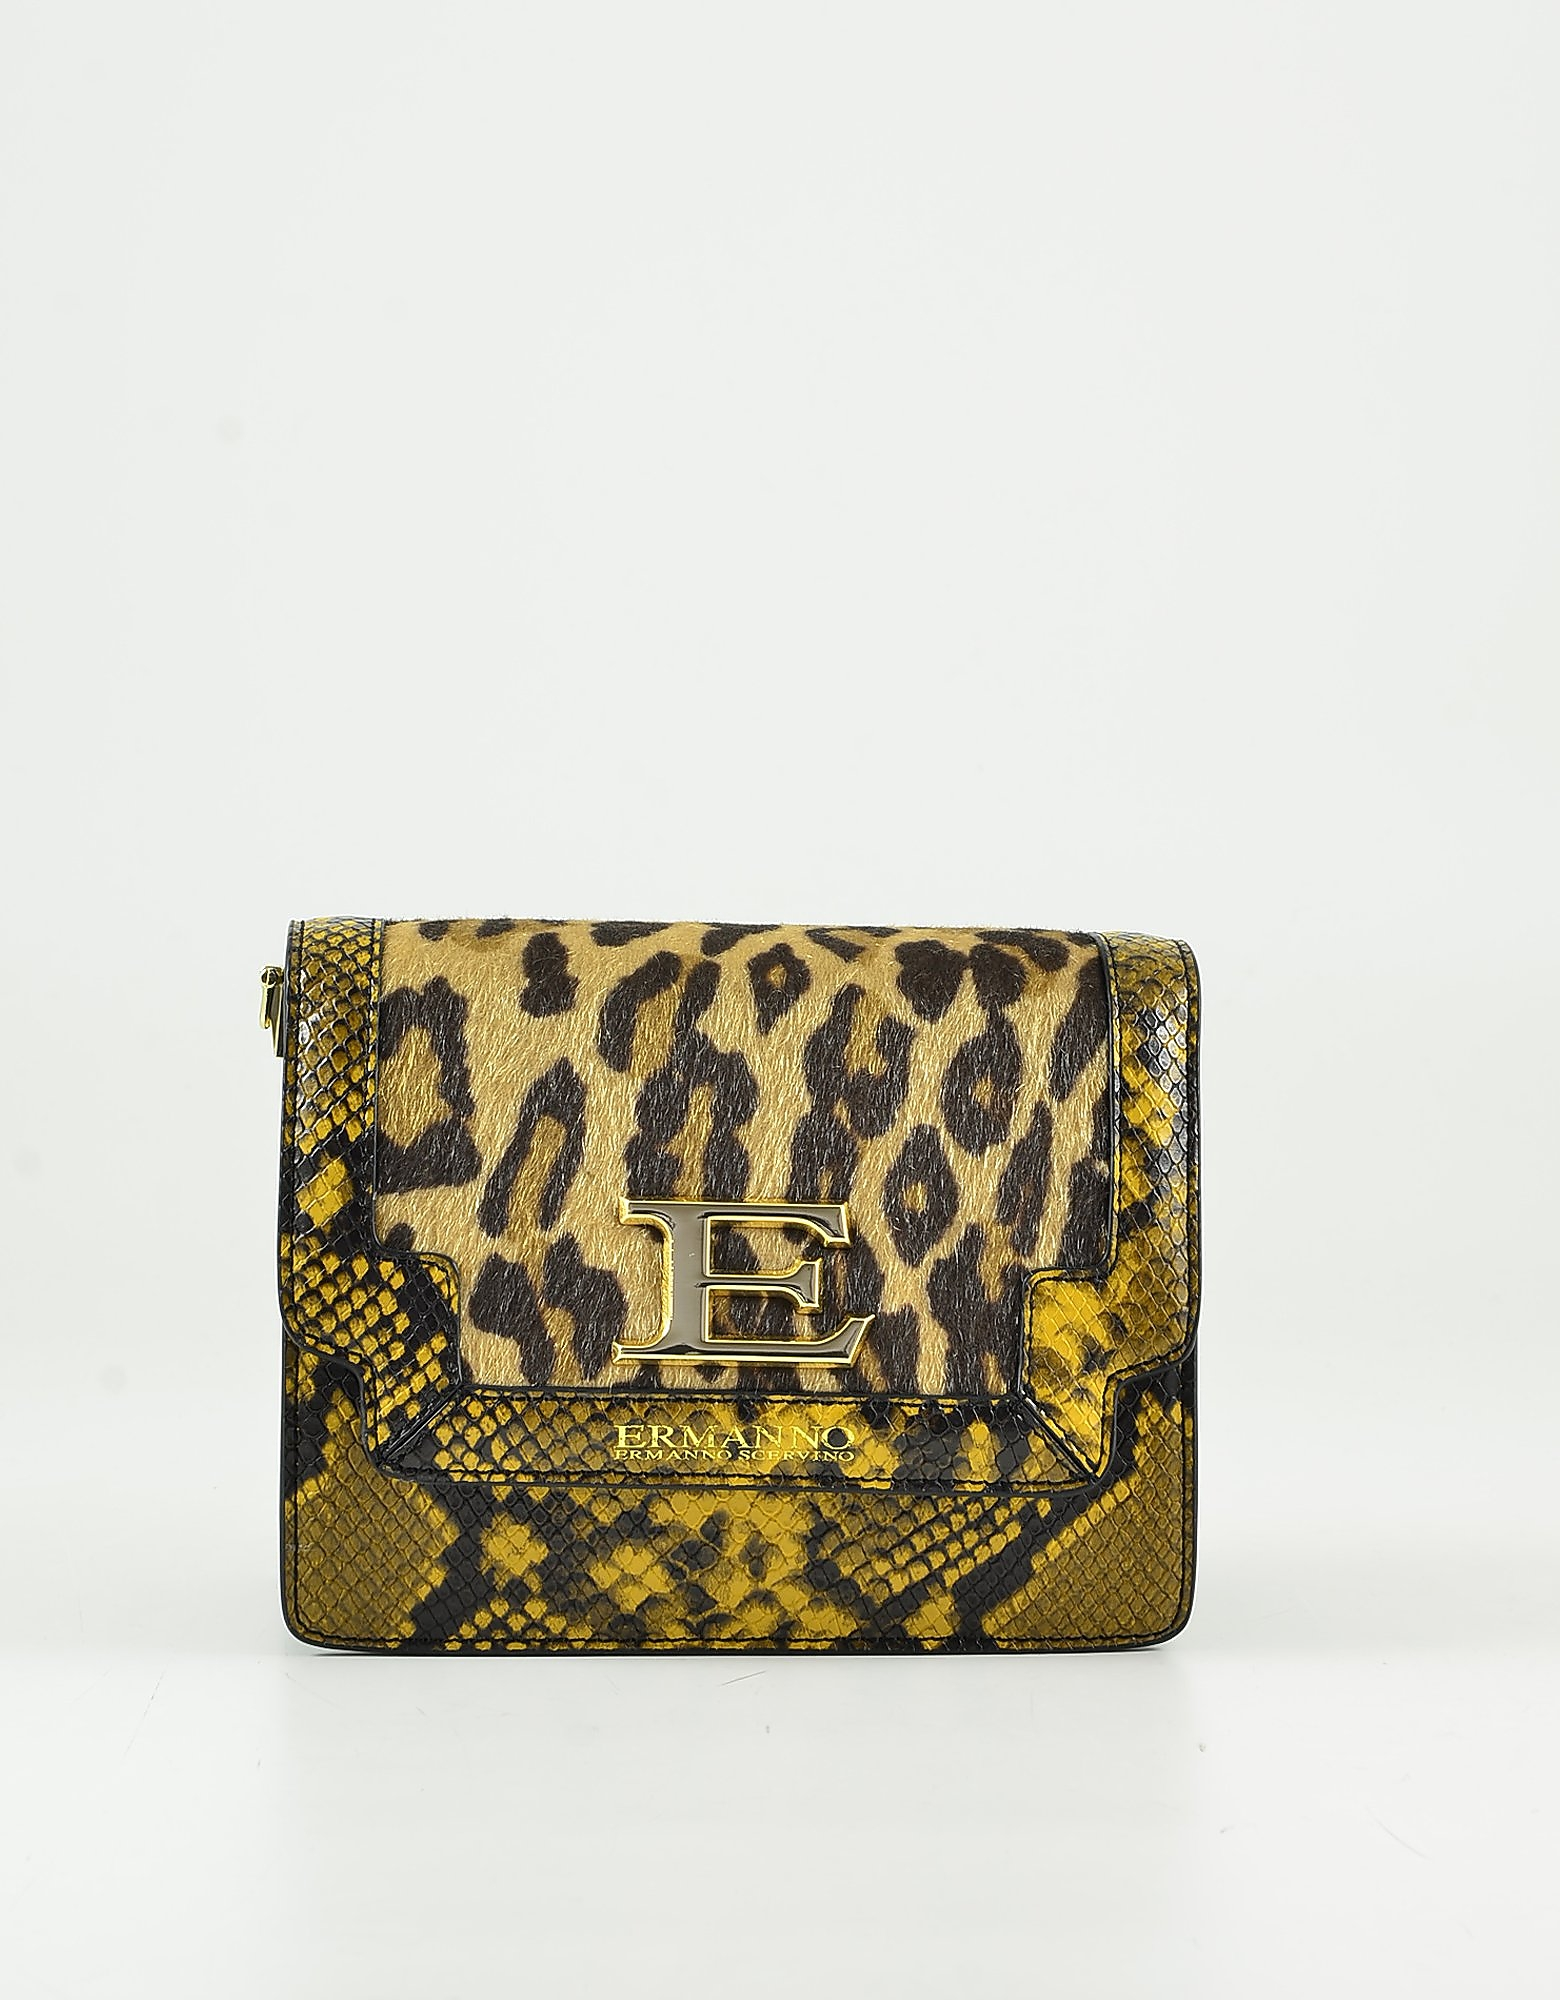 Ermanno Scervino Animal Print Small Shoulder Bag In Brown